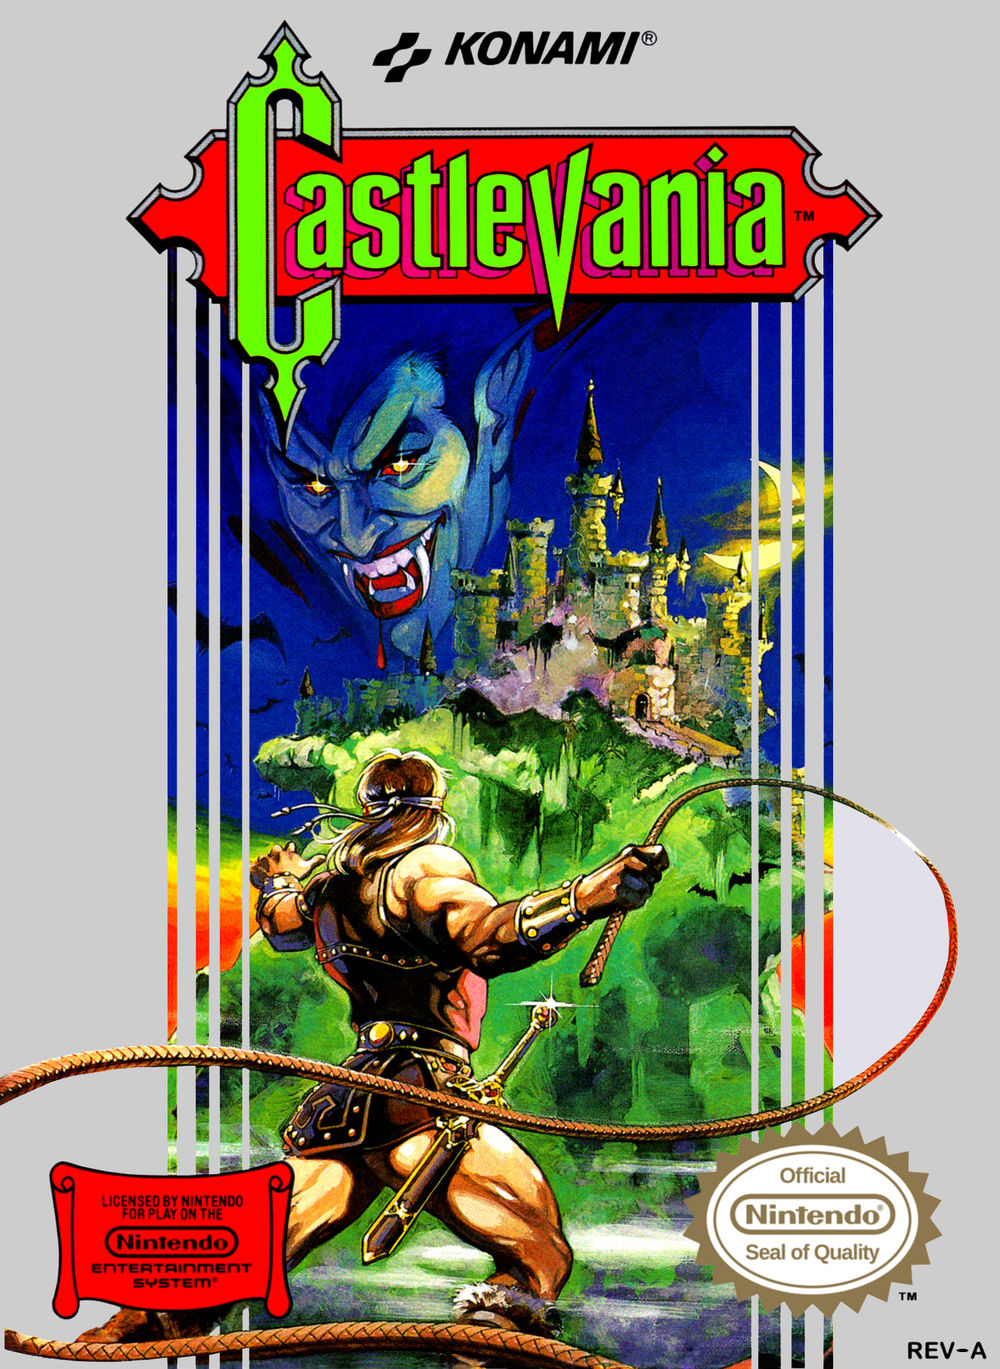 Cover of the first Nintendo Castlevania game, featuring Simon Belmont confronting Dracula's castle, with Dracula's face superimposed on the sky.